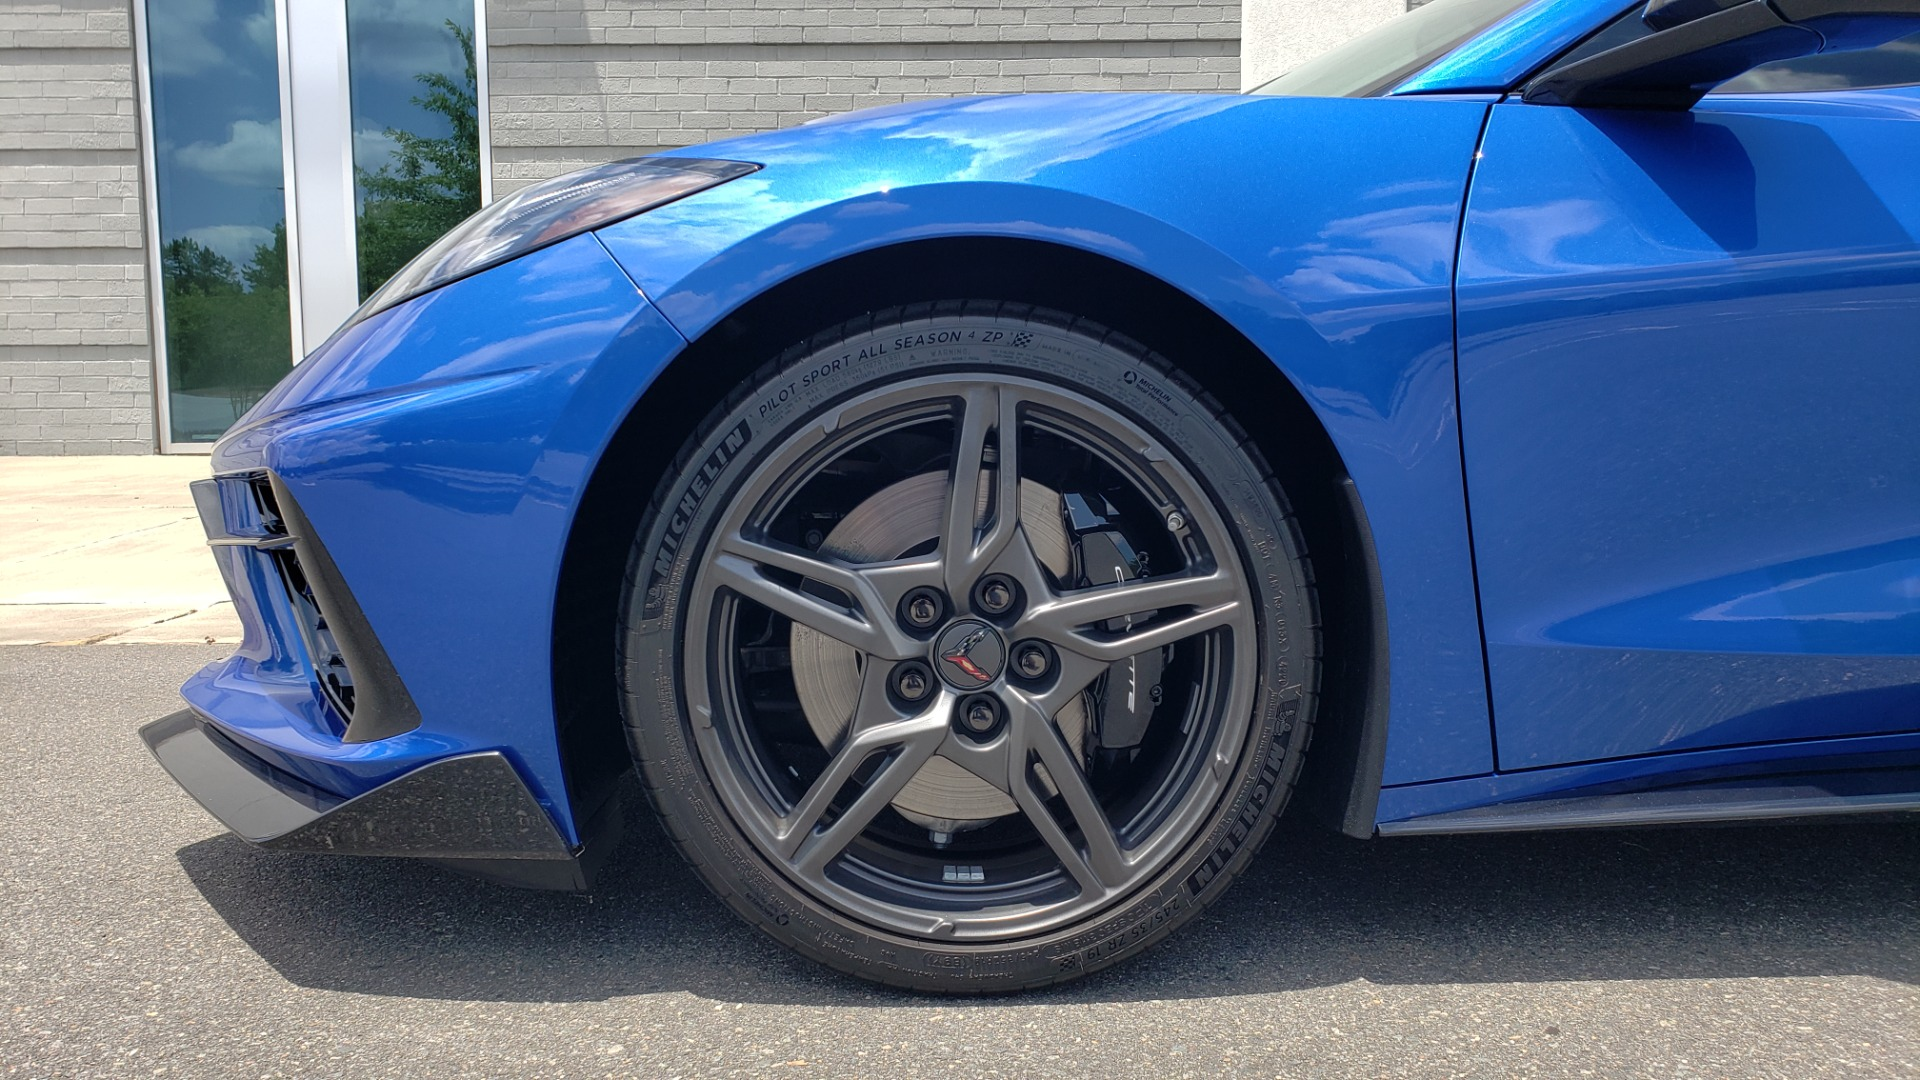 Used 2020 Chevrolet CORVETTE C8 STINGRAY COUPE 2LT / PERF & Z51 PKG / NAV / BOSE / 8-SPD AUTO / REARVIEW for sale Sold at Formula Imports in Charlotte NC 28227 53